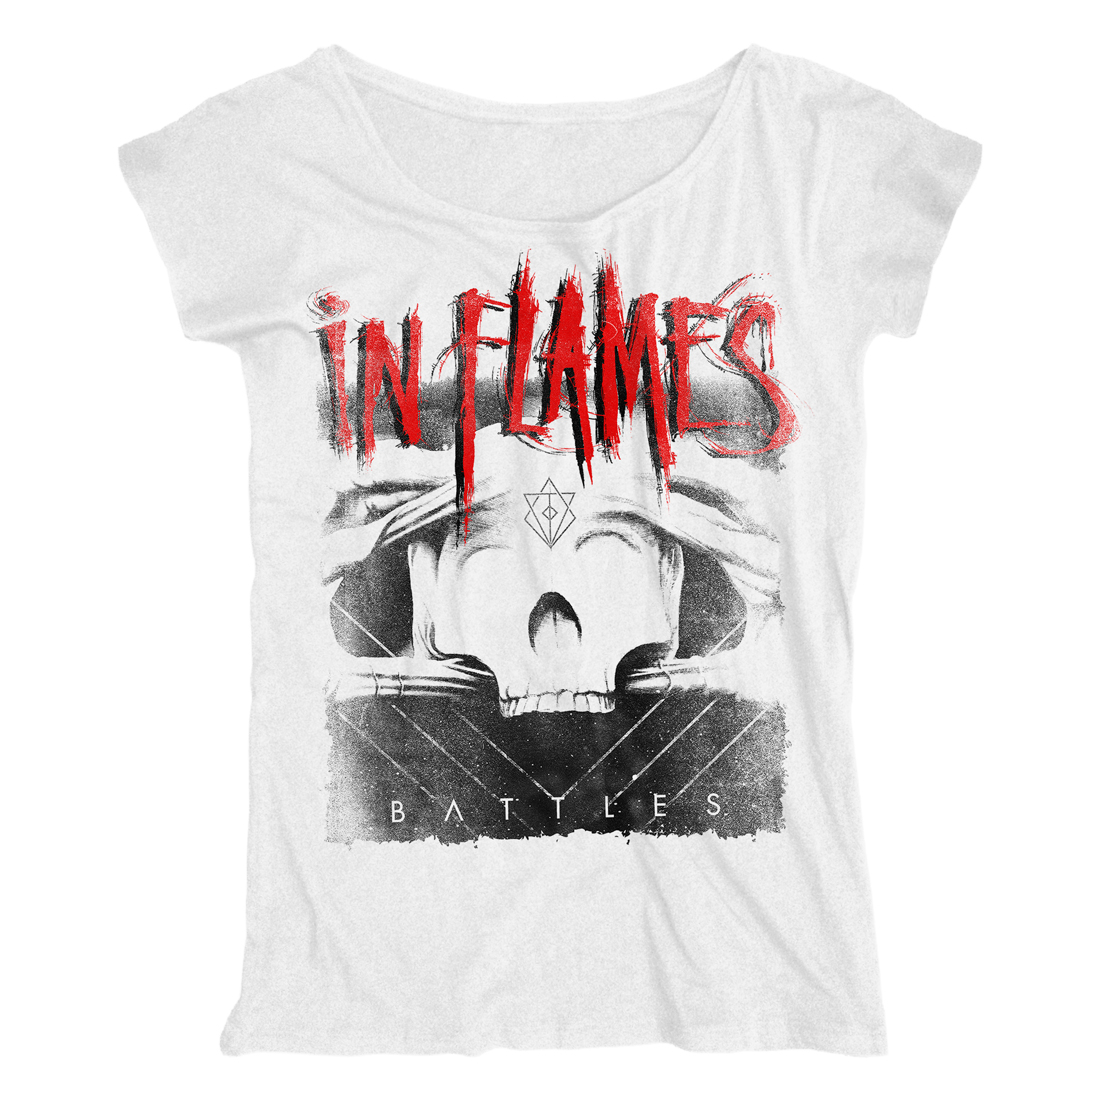 √Battles White Cover von In Flames - Girlie Shirt Loose Fit jetzt im In Flames Shop